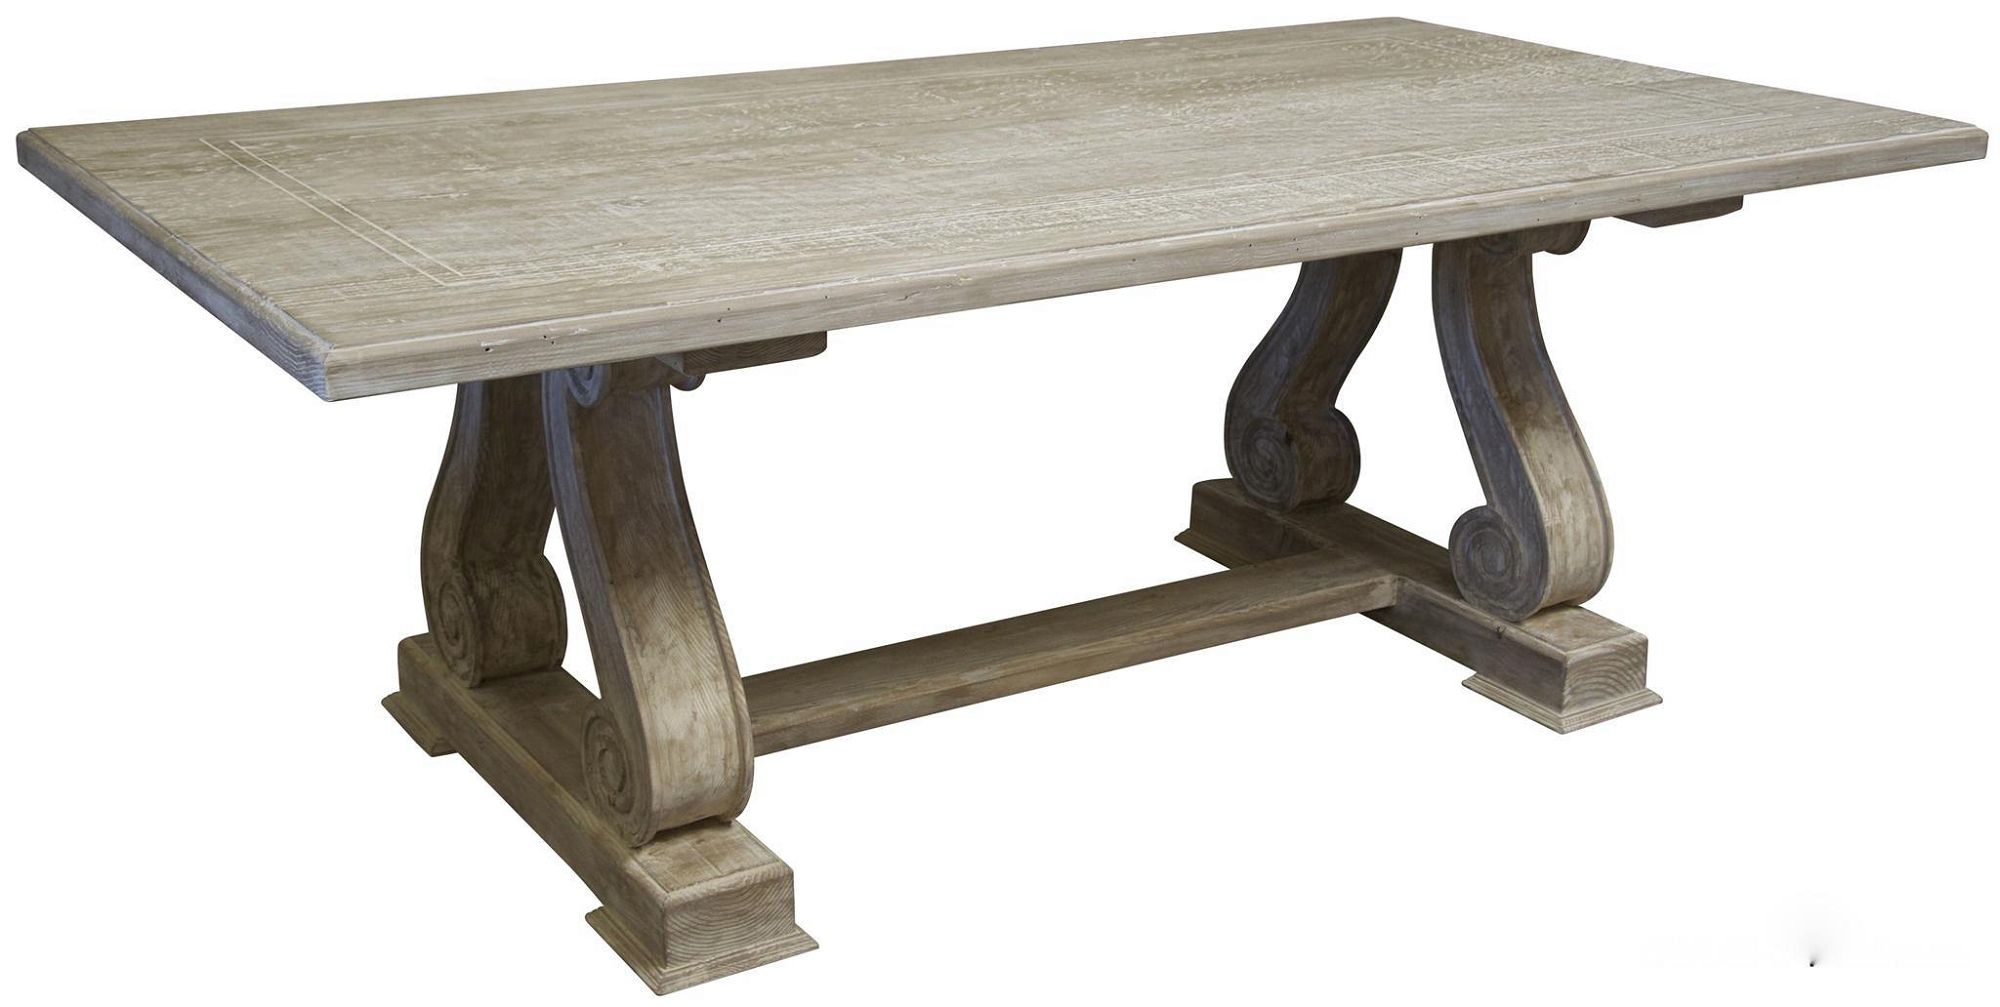 Serpentine Leg Trestle Dining Table In Reclaimed Wood